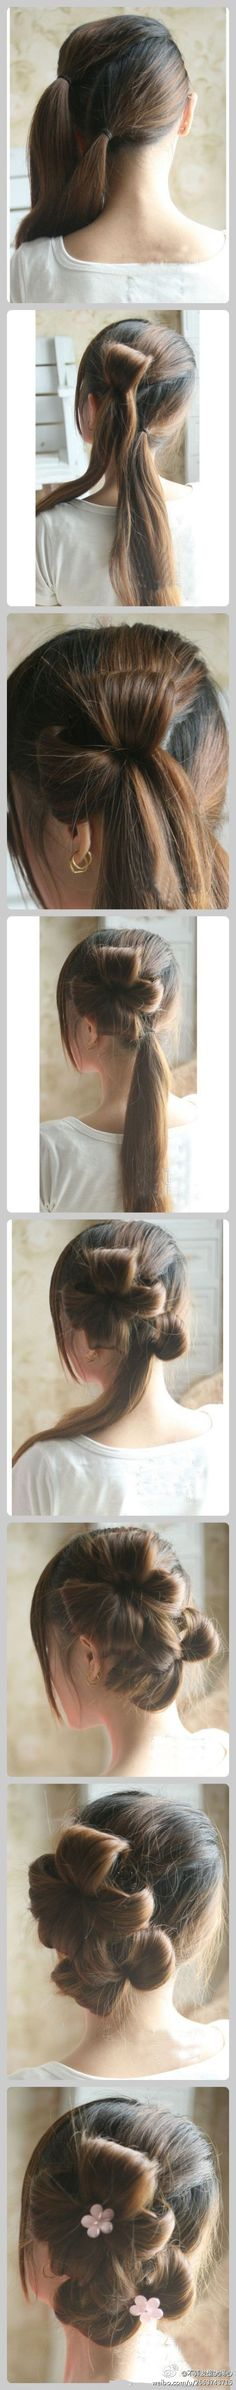 This would be a fun hairstyle to do on someone. I don't think I'd wear it anywhere though lol